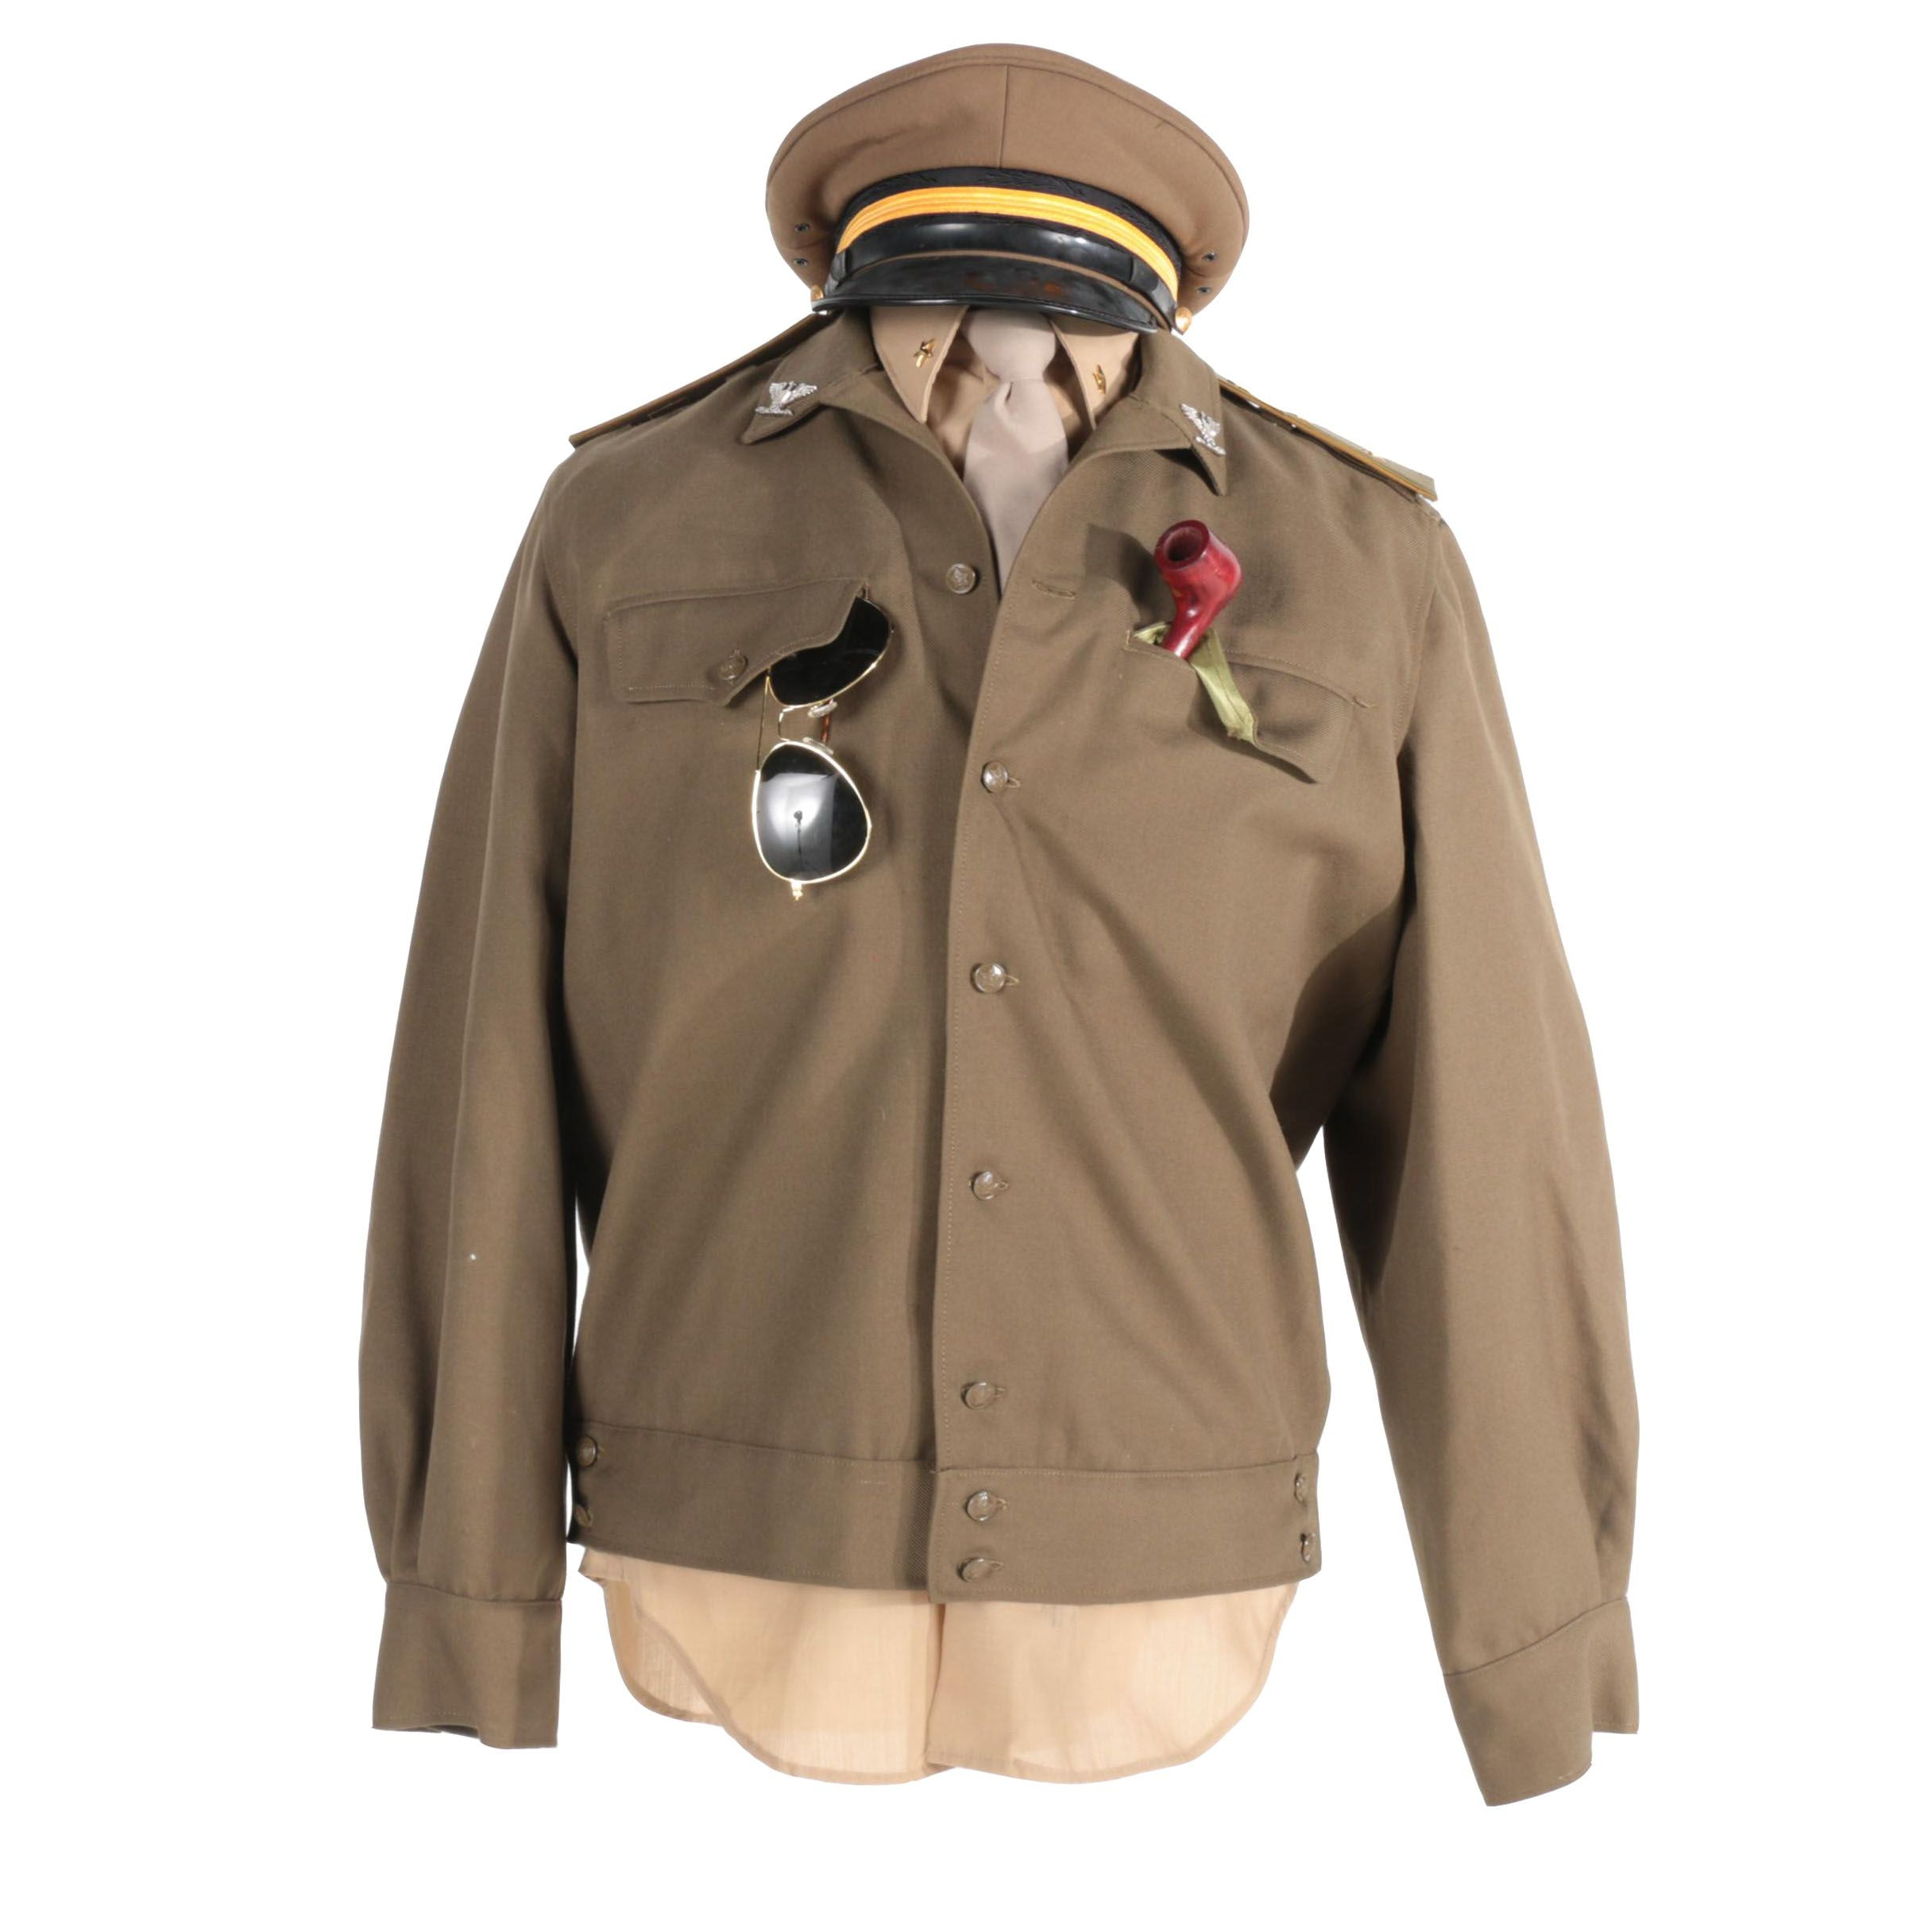 Vintage Military Apparel with Accessories